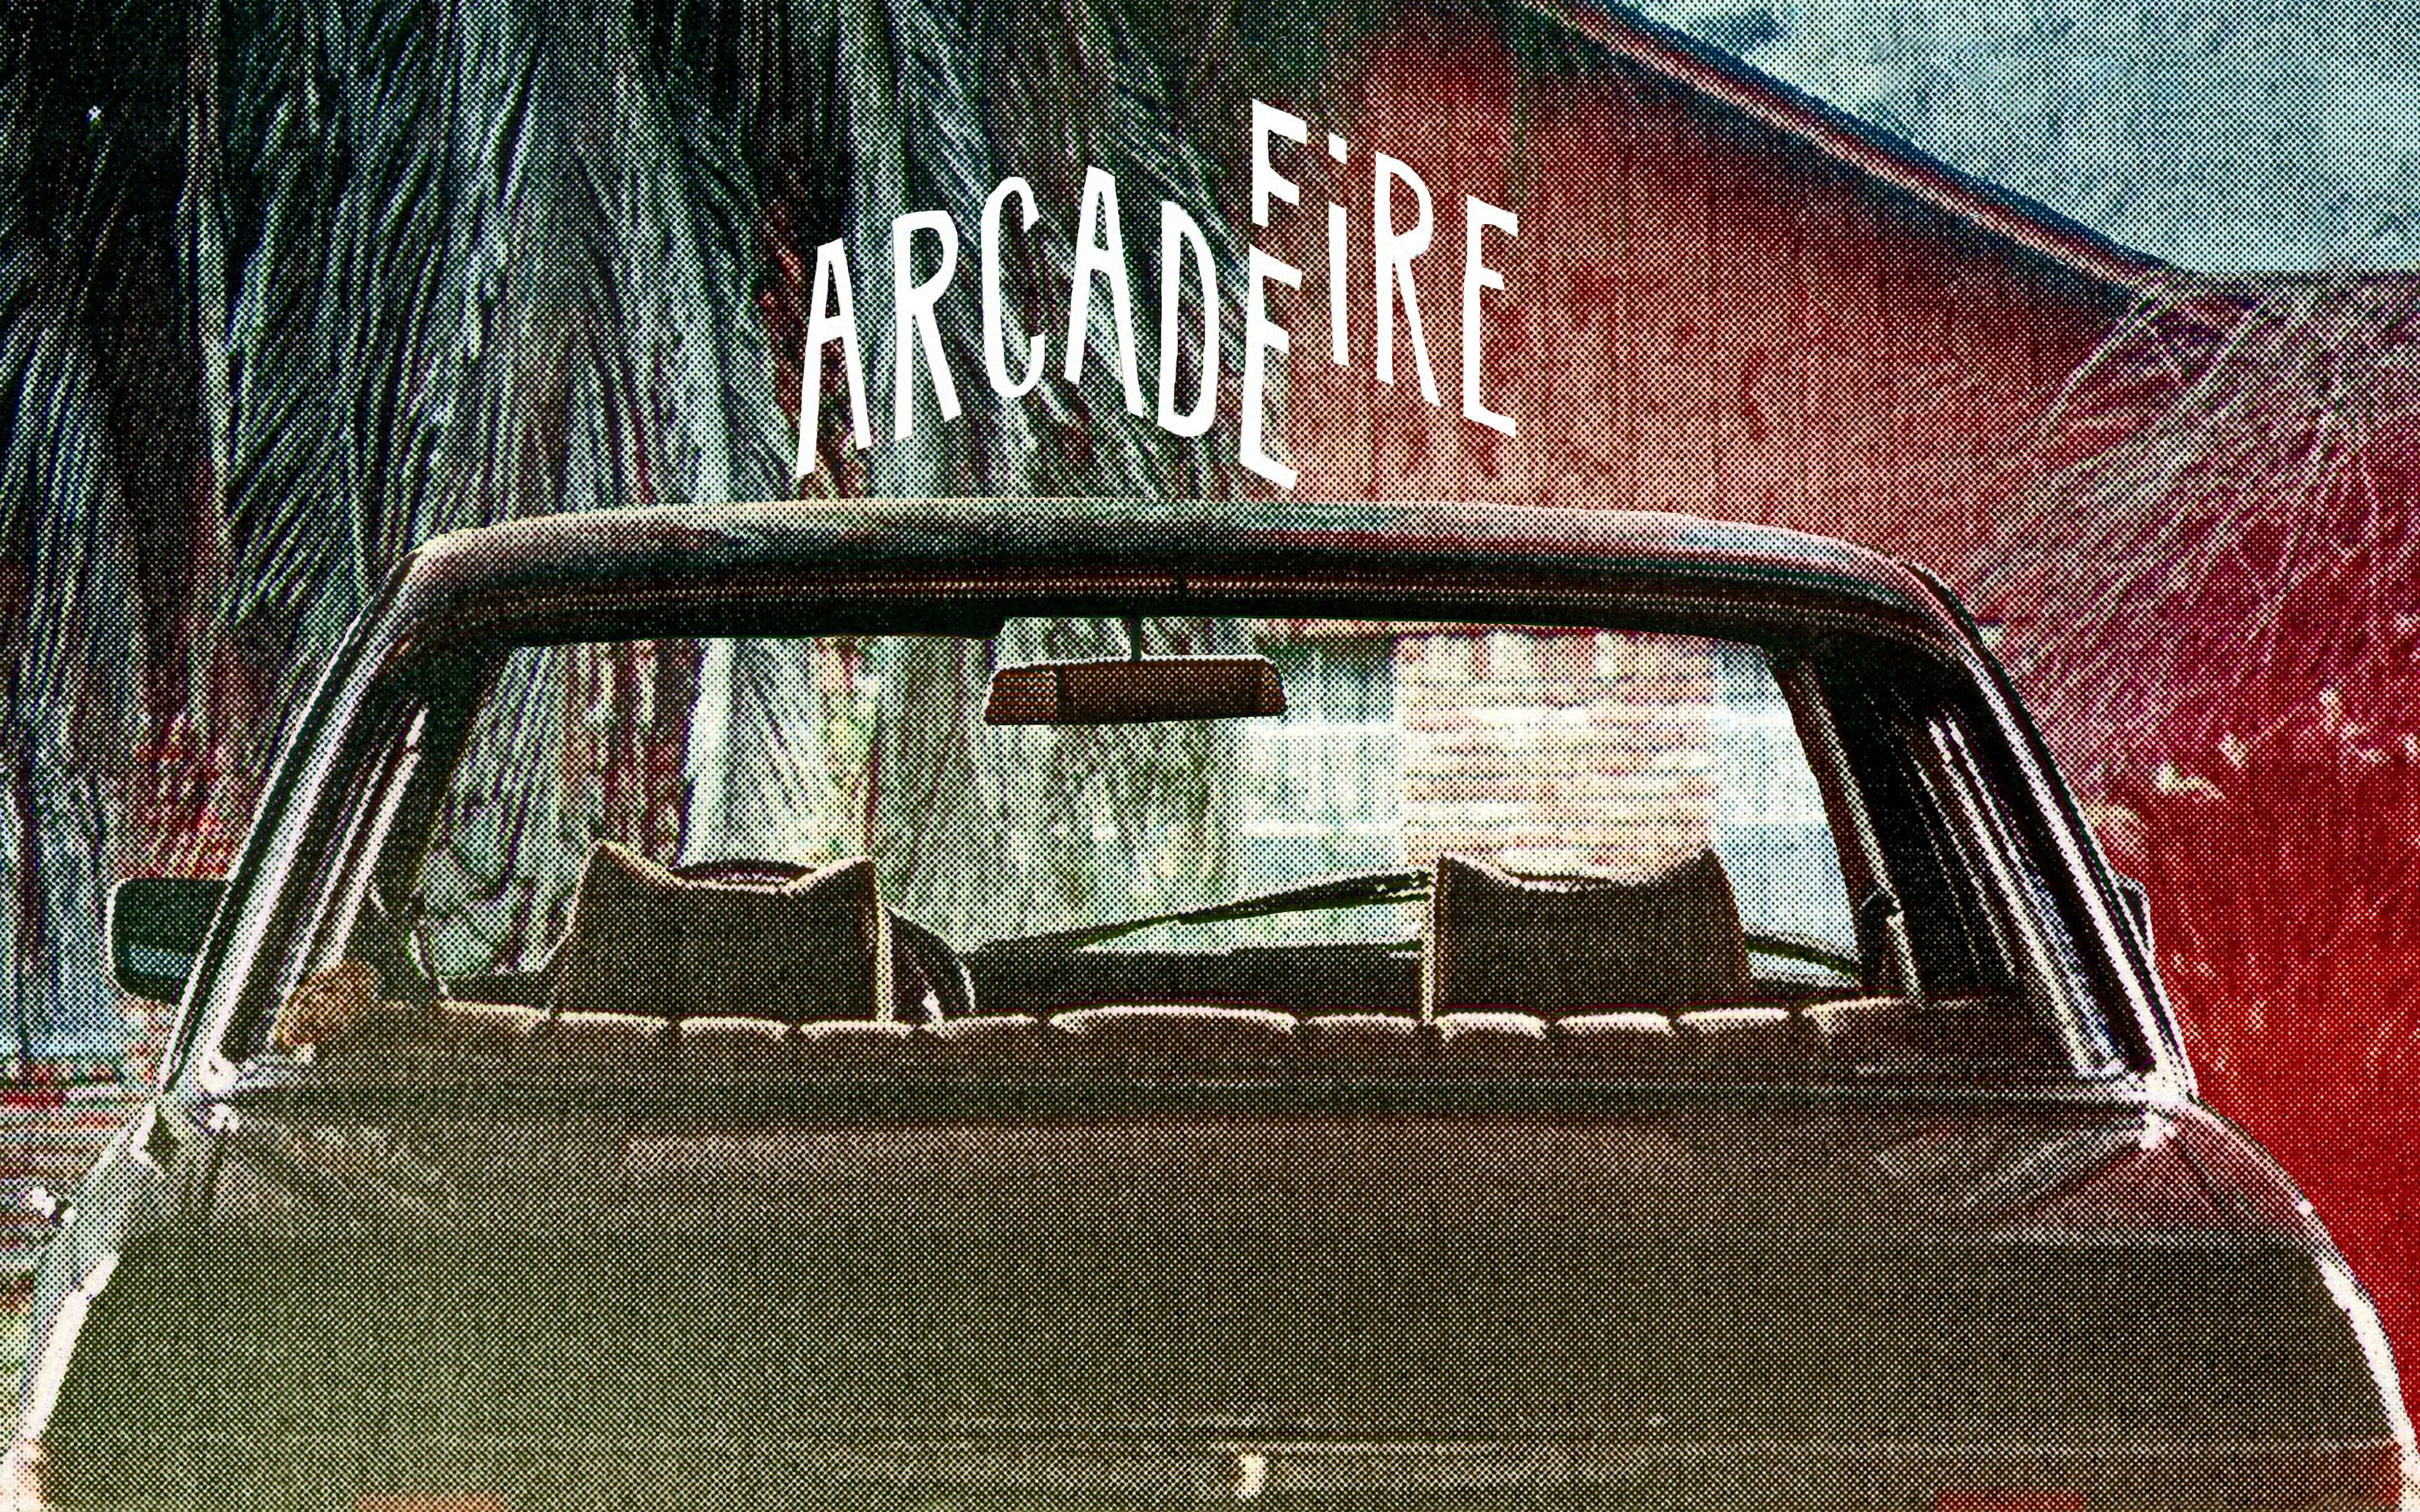 Arcade Fire Wallpaper